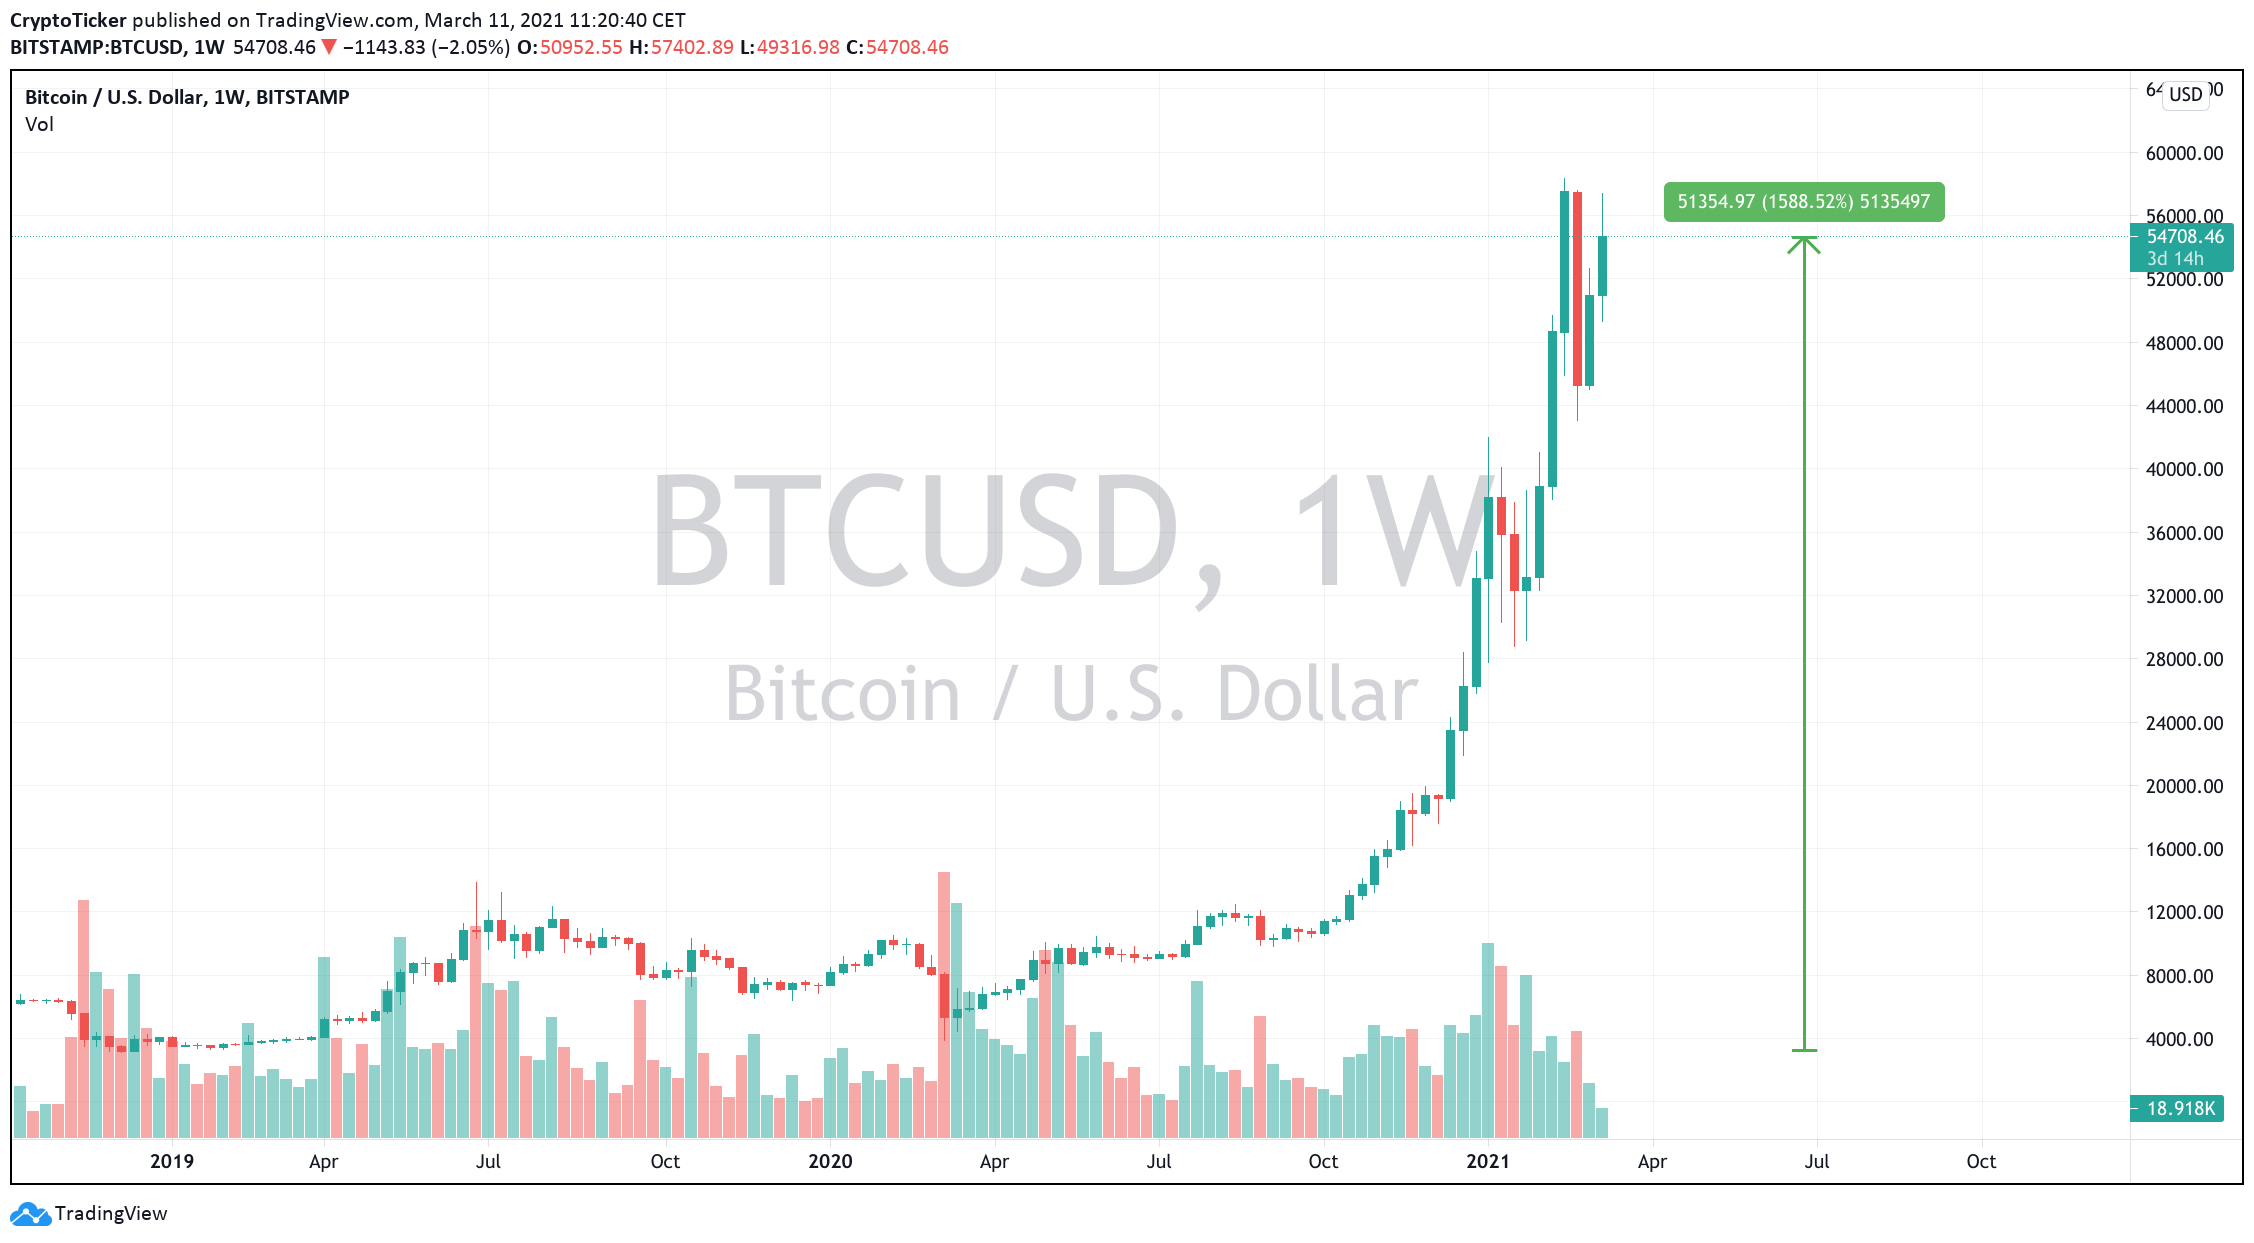 BTC/USD 1-week chart showing a missed opportunity for non-Bitcoin buyers